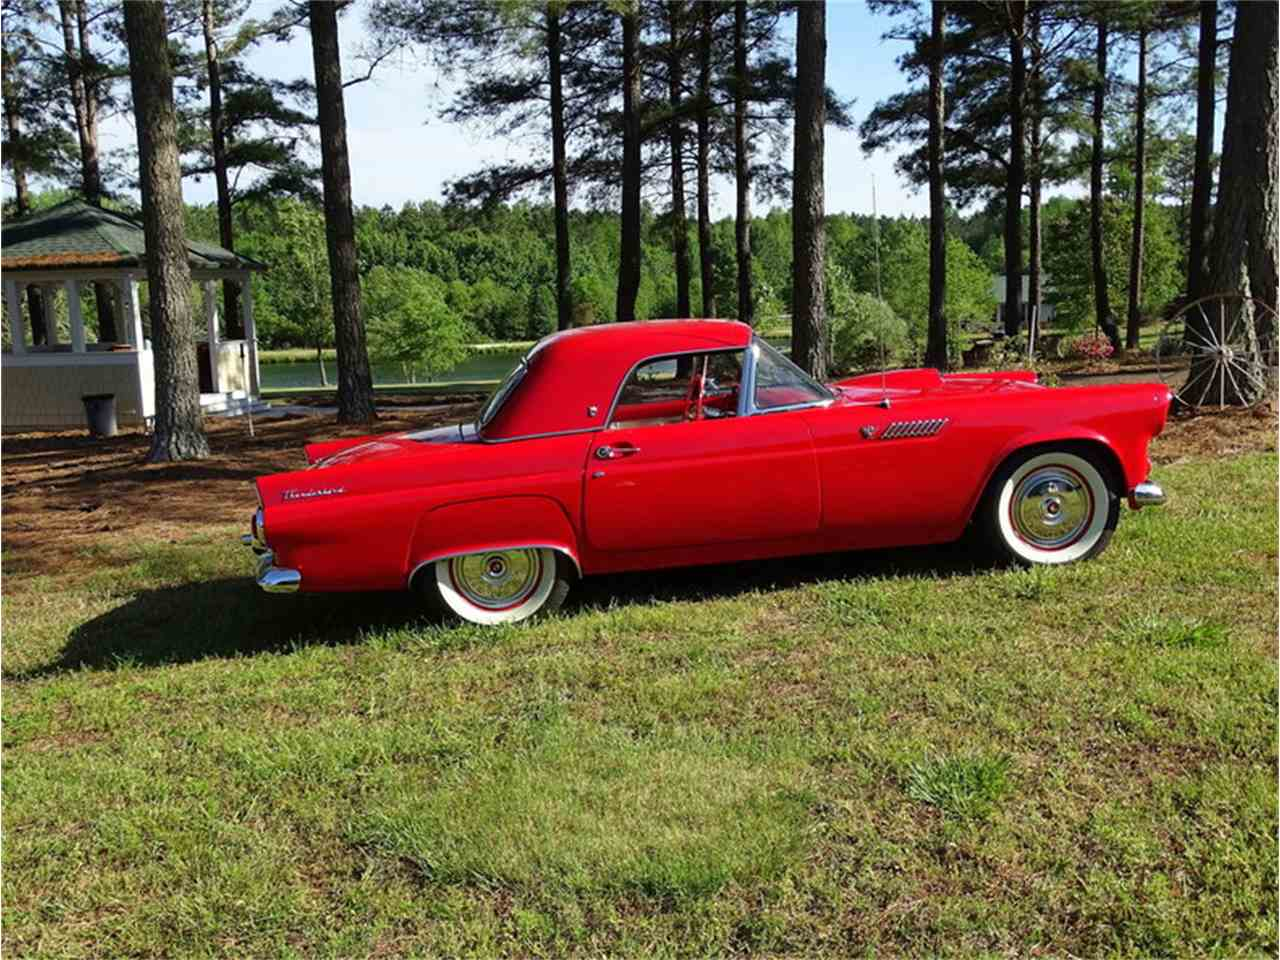 Large Picture of 1955 Ford Thunderbird located in North Carolina Auction Vehicle Offered by GAA Classic Cars Auctions - NMA5